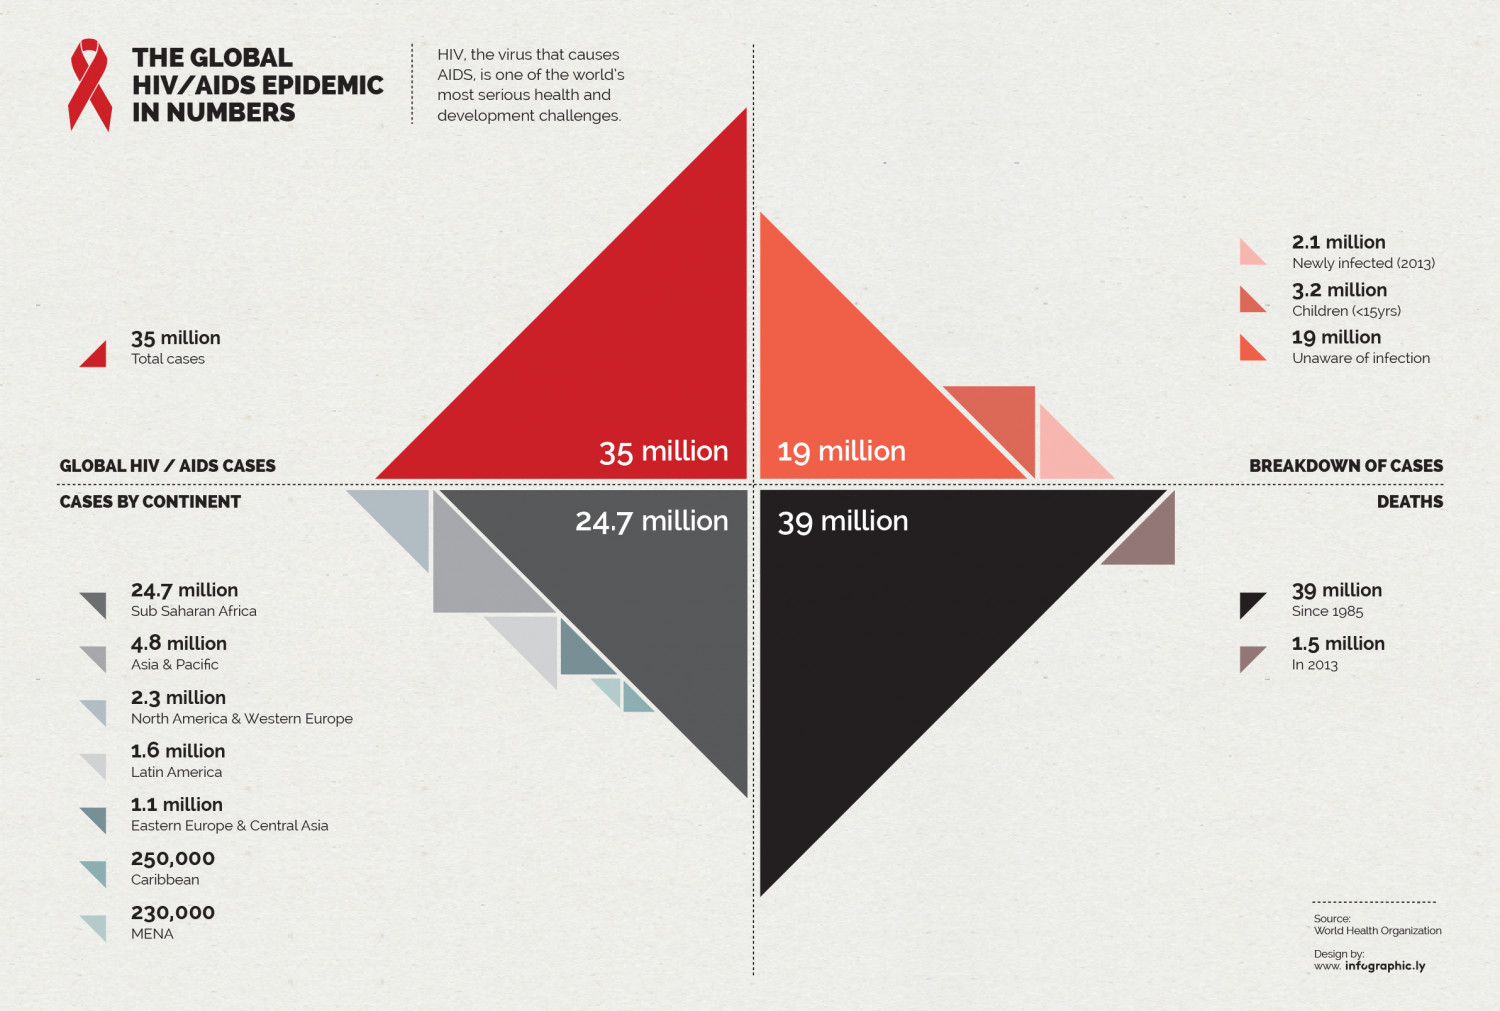 The Global HIV/AIDS Epidemic in Numbers Infographic